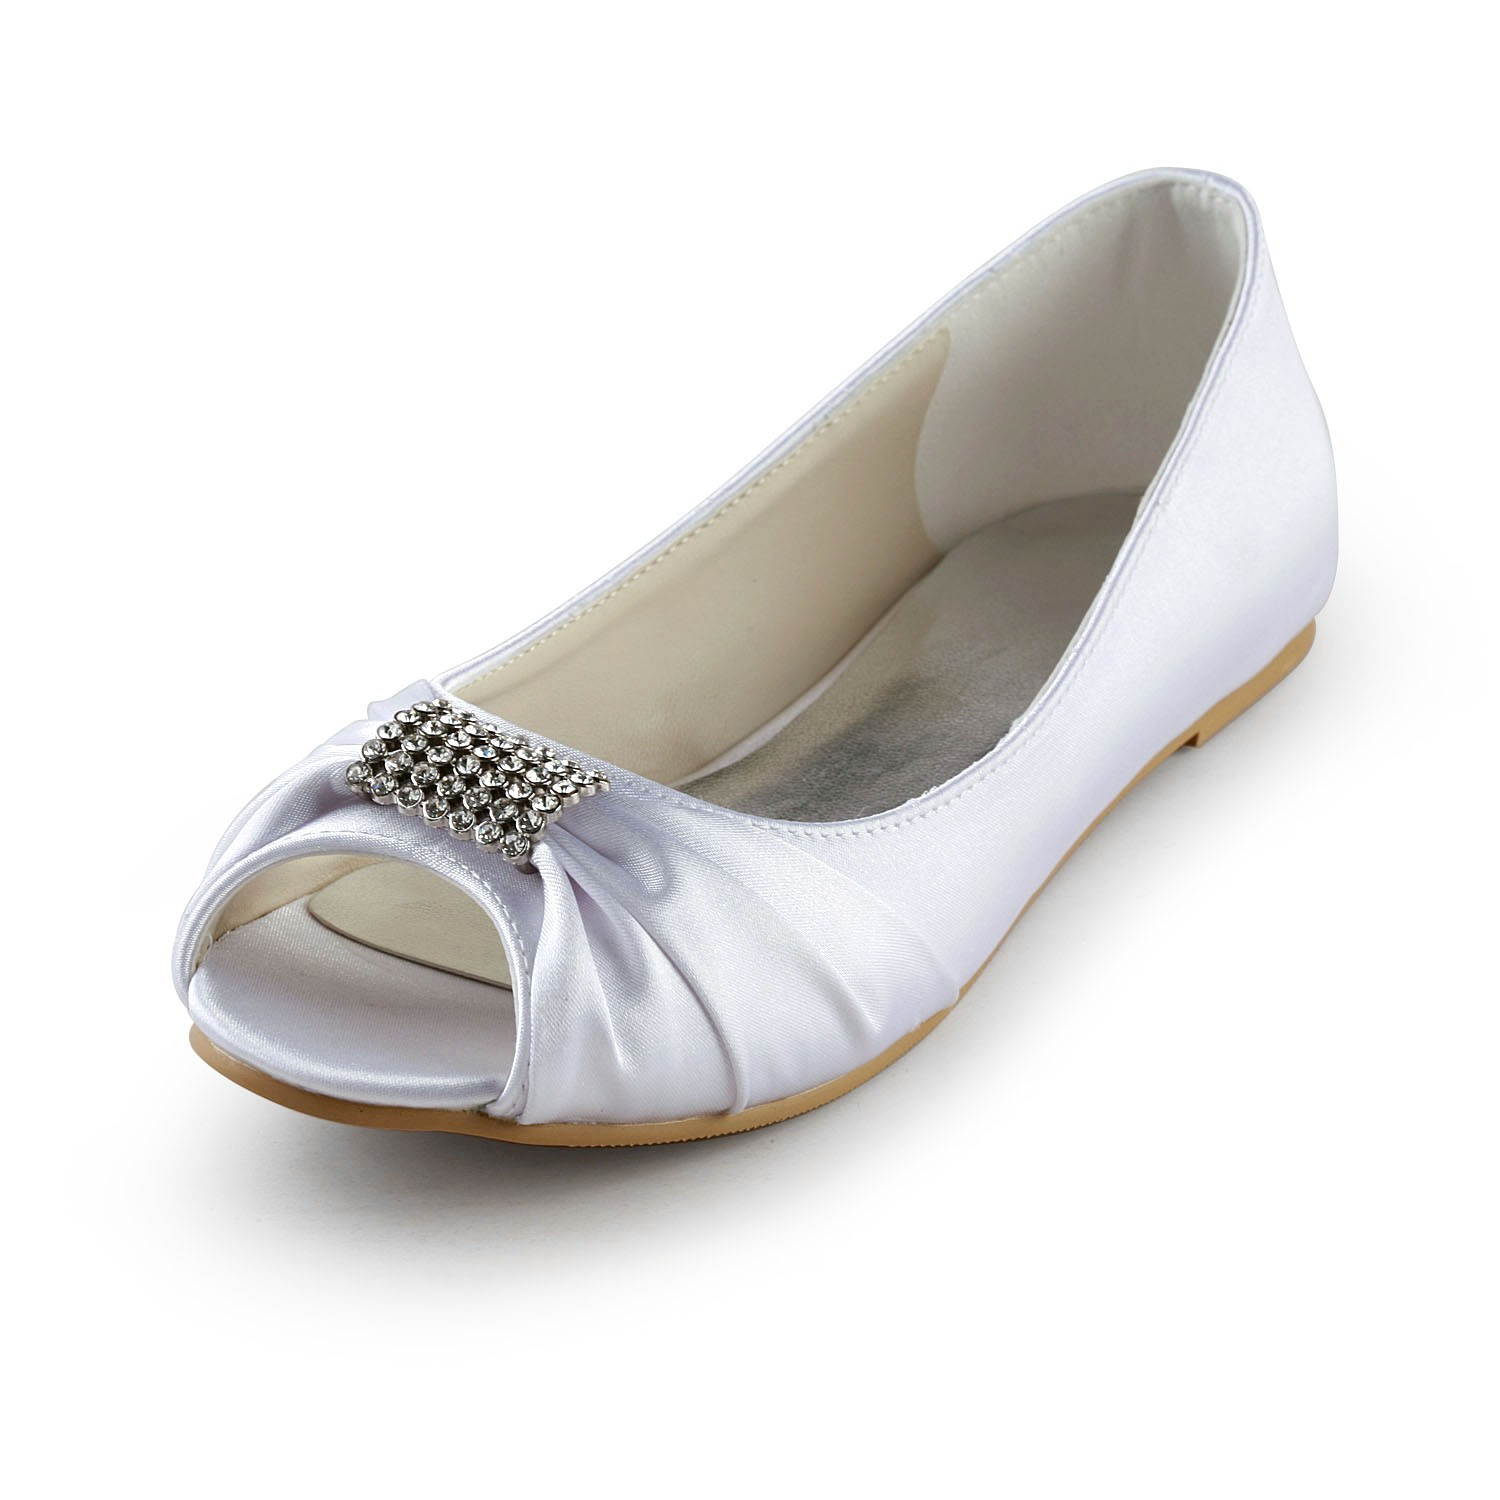 7082eac8f56 Women s Satin Flat Heel Peep Toe Sandals White Wedding Shoes With Rhinestone